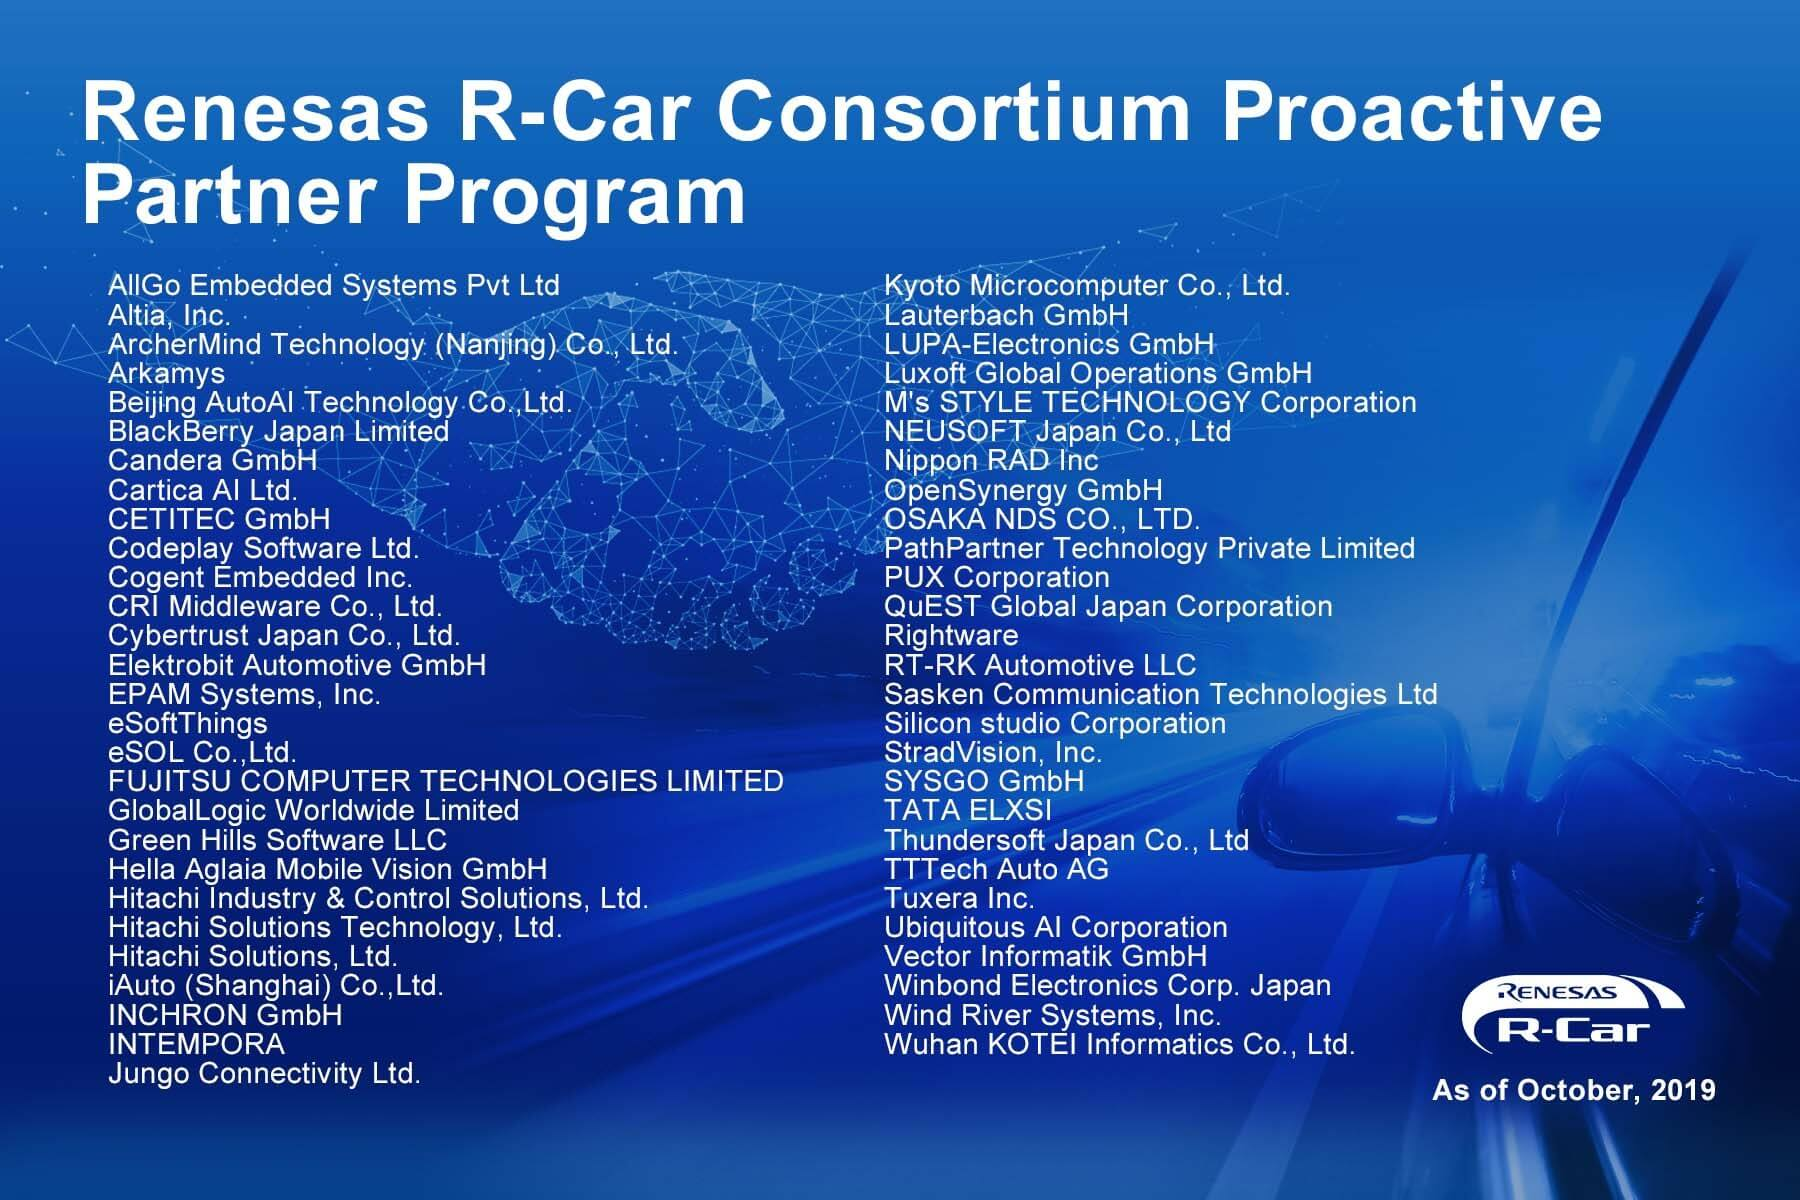 Renesas introduces the R-Car Consortium Proactive Partner Program to accelerate automotive mobility innovation-SemiMedia